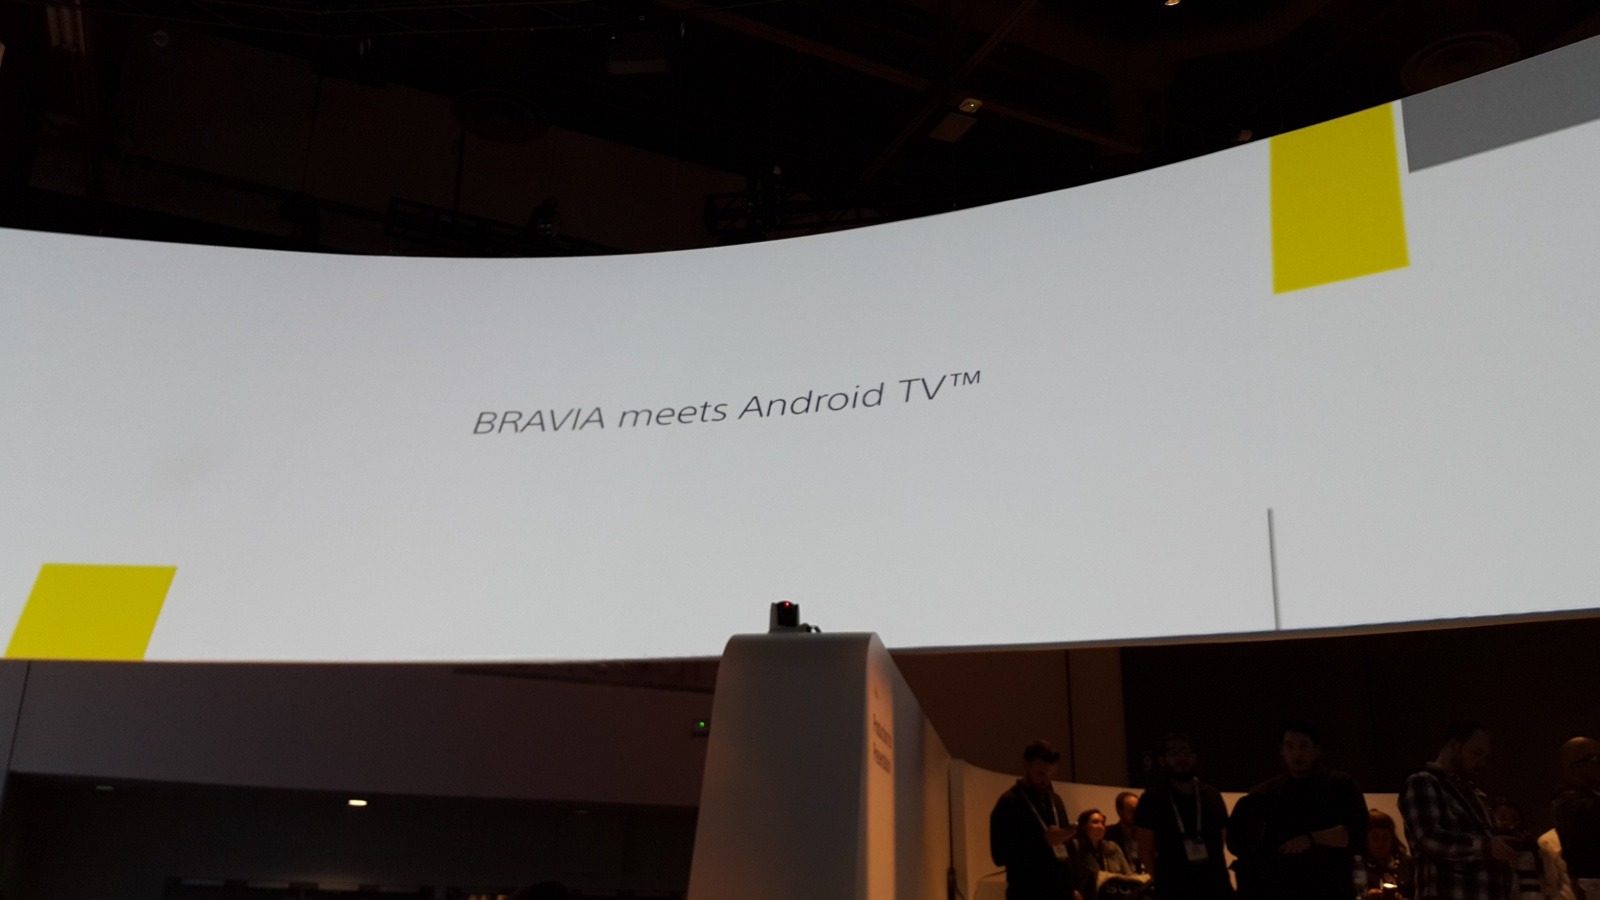 Sony embraces Android TV